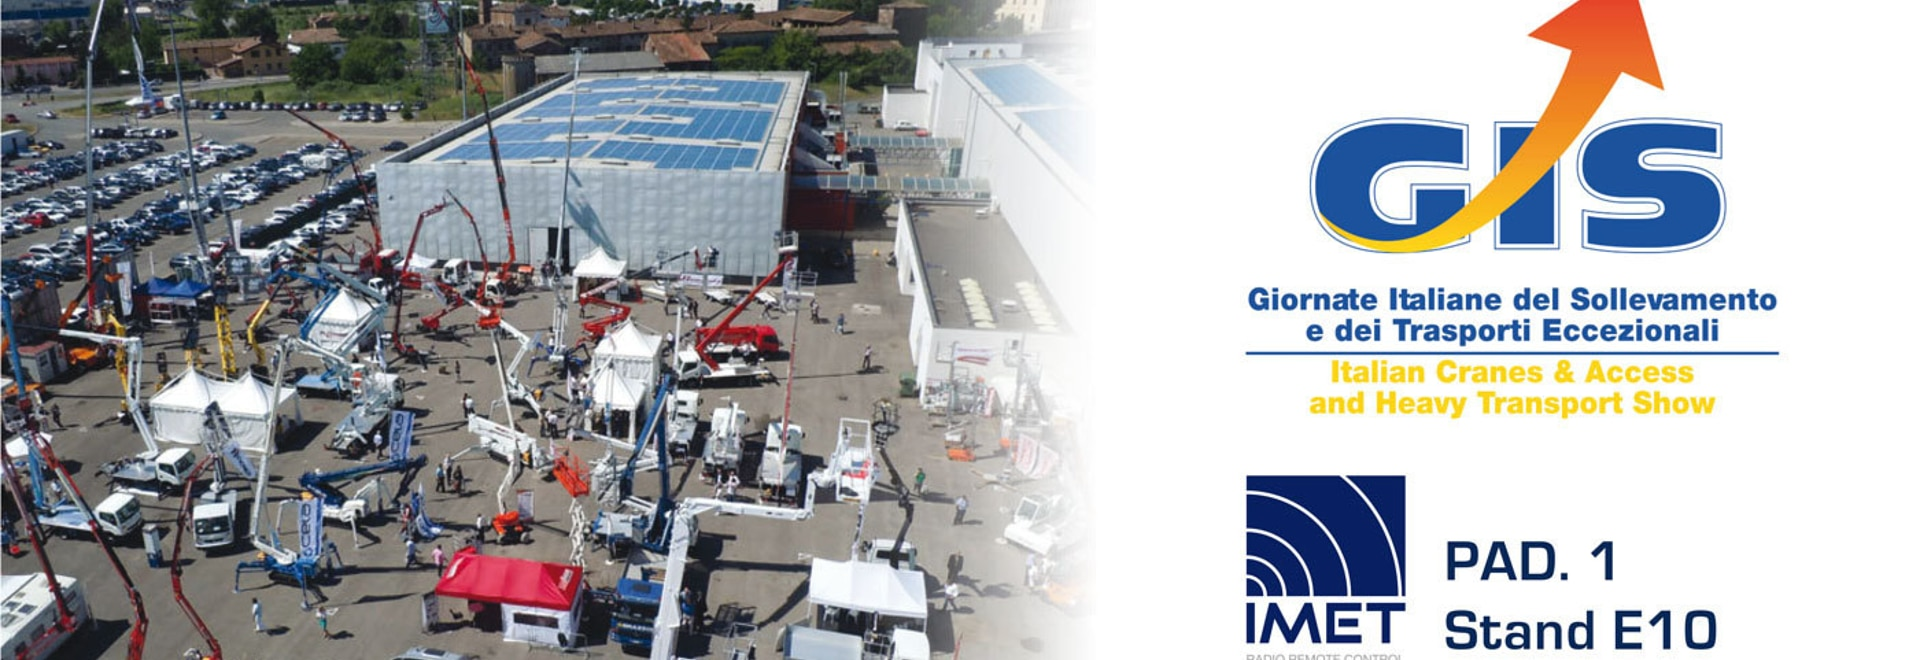 GIS exhibition dedicated to lifting, handling and exceptional transports in Italy